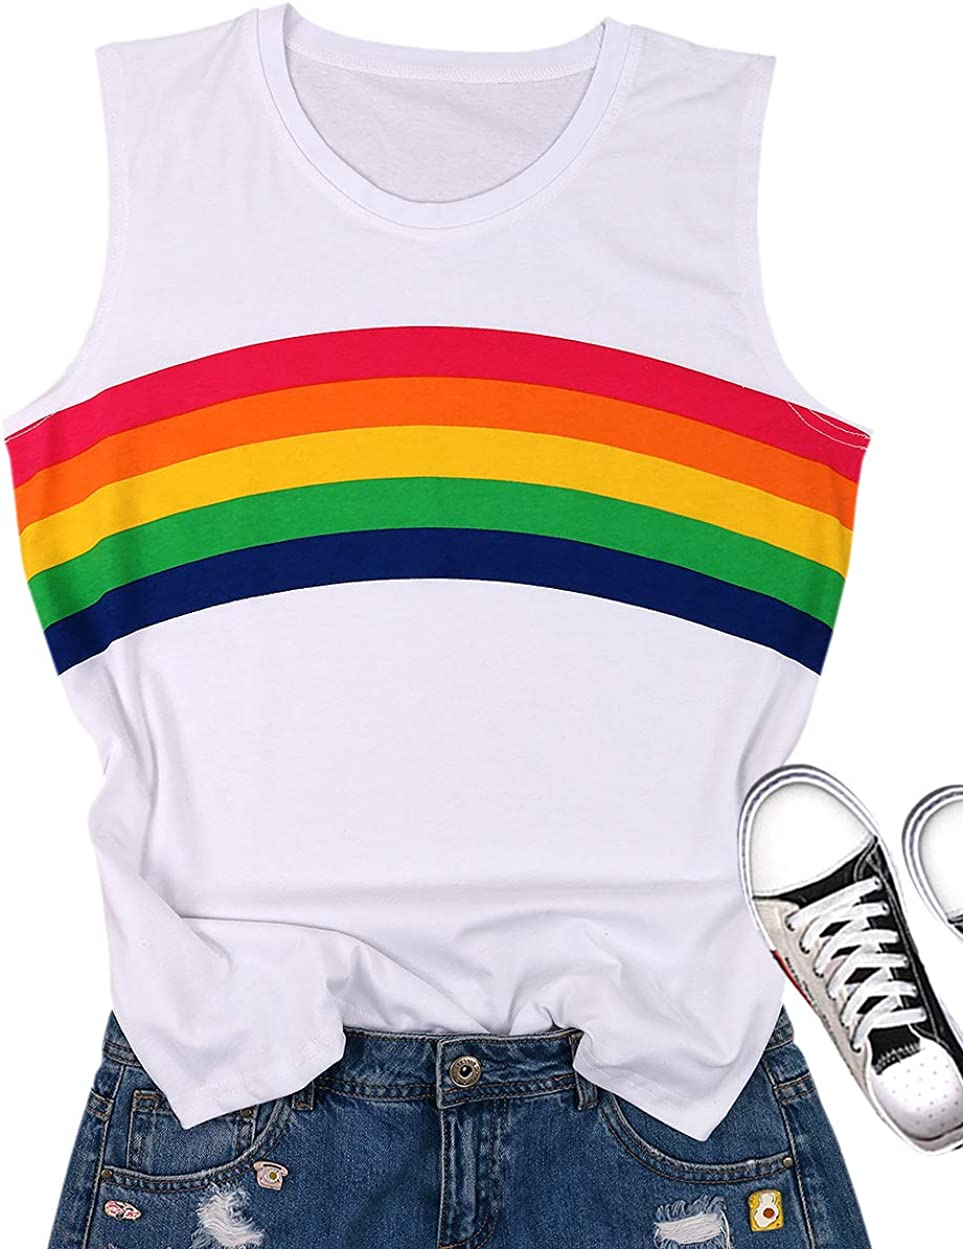 Gay Pride Tank Top Women Rainbow Graphic Print Casual Sleeveless Cute White LGBT Tank Tops